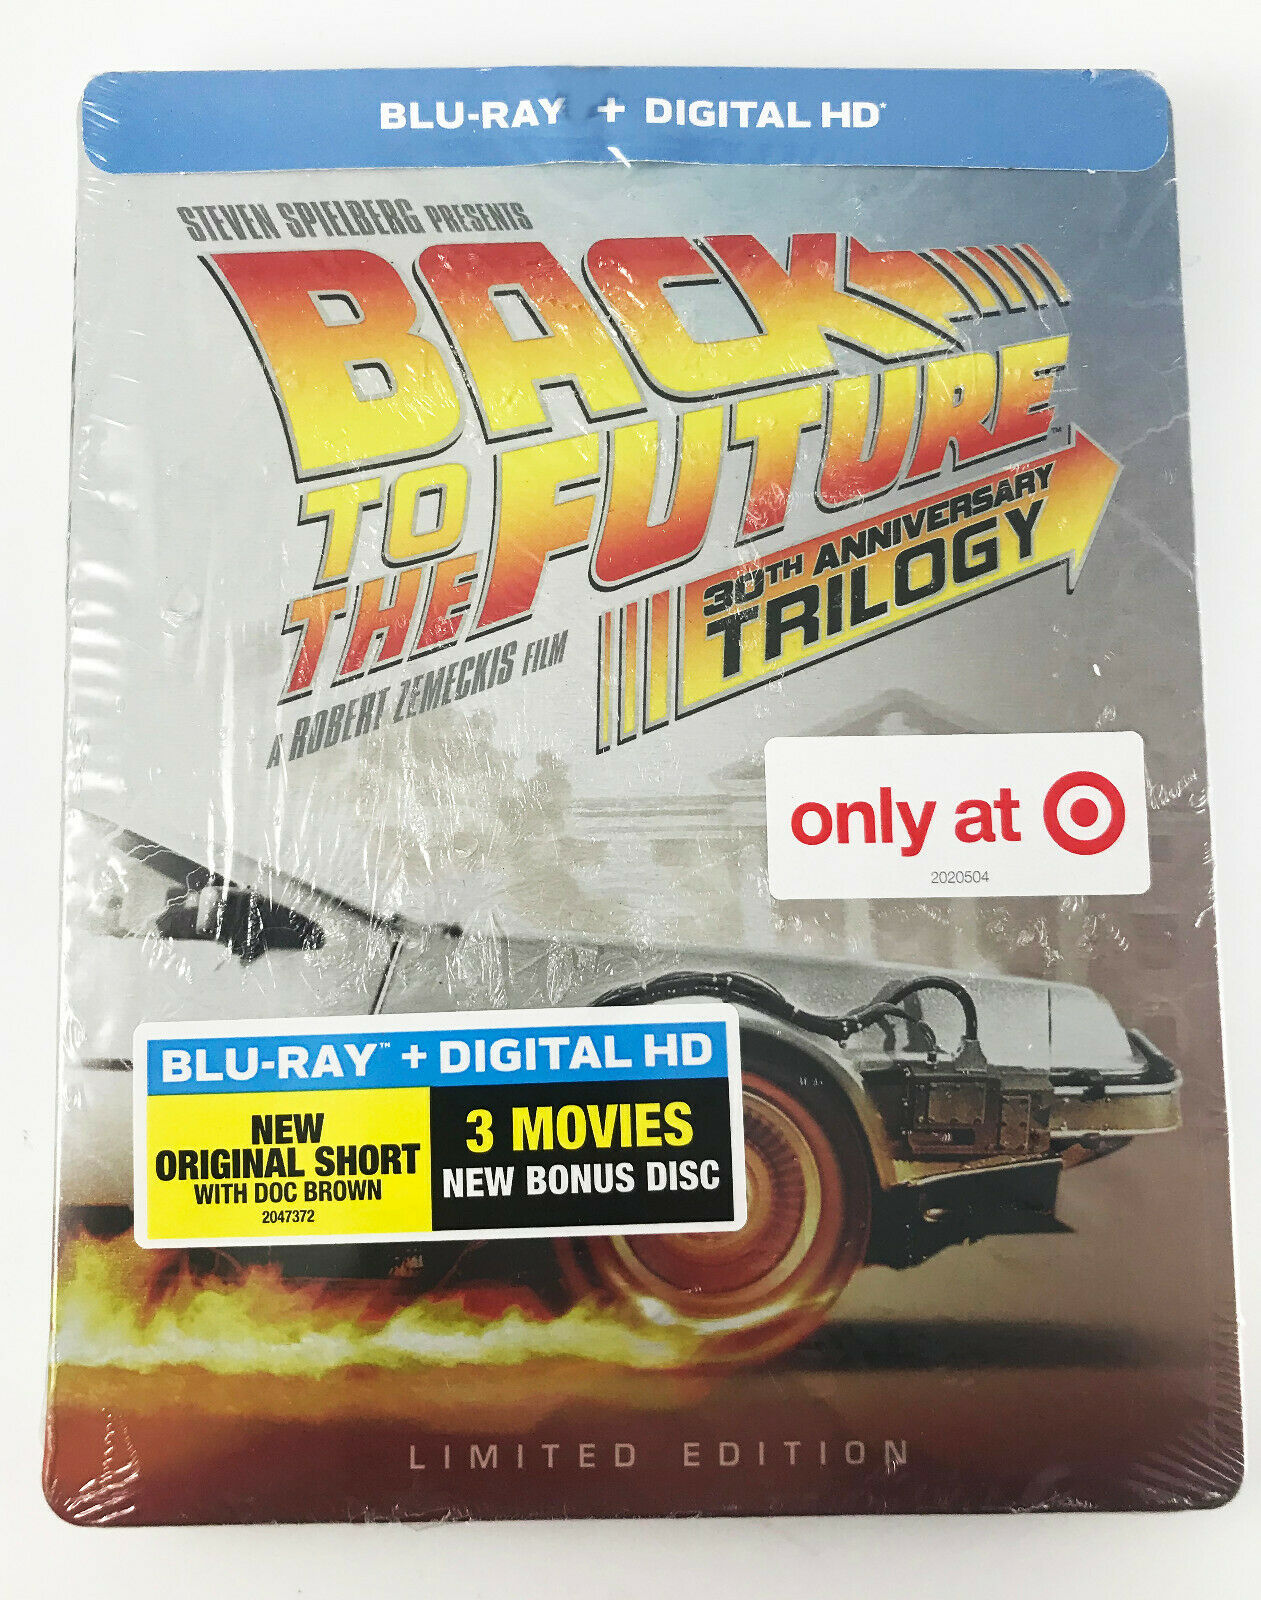 BACK TO THE FUTURE 30th Anniversary Trilogy Steelbook Blu Ray Digital TARGET  - $39.95